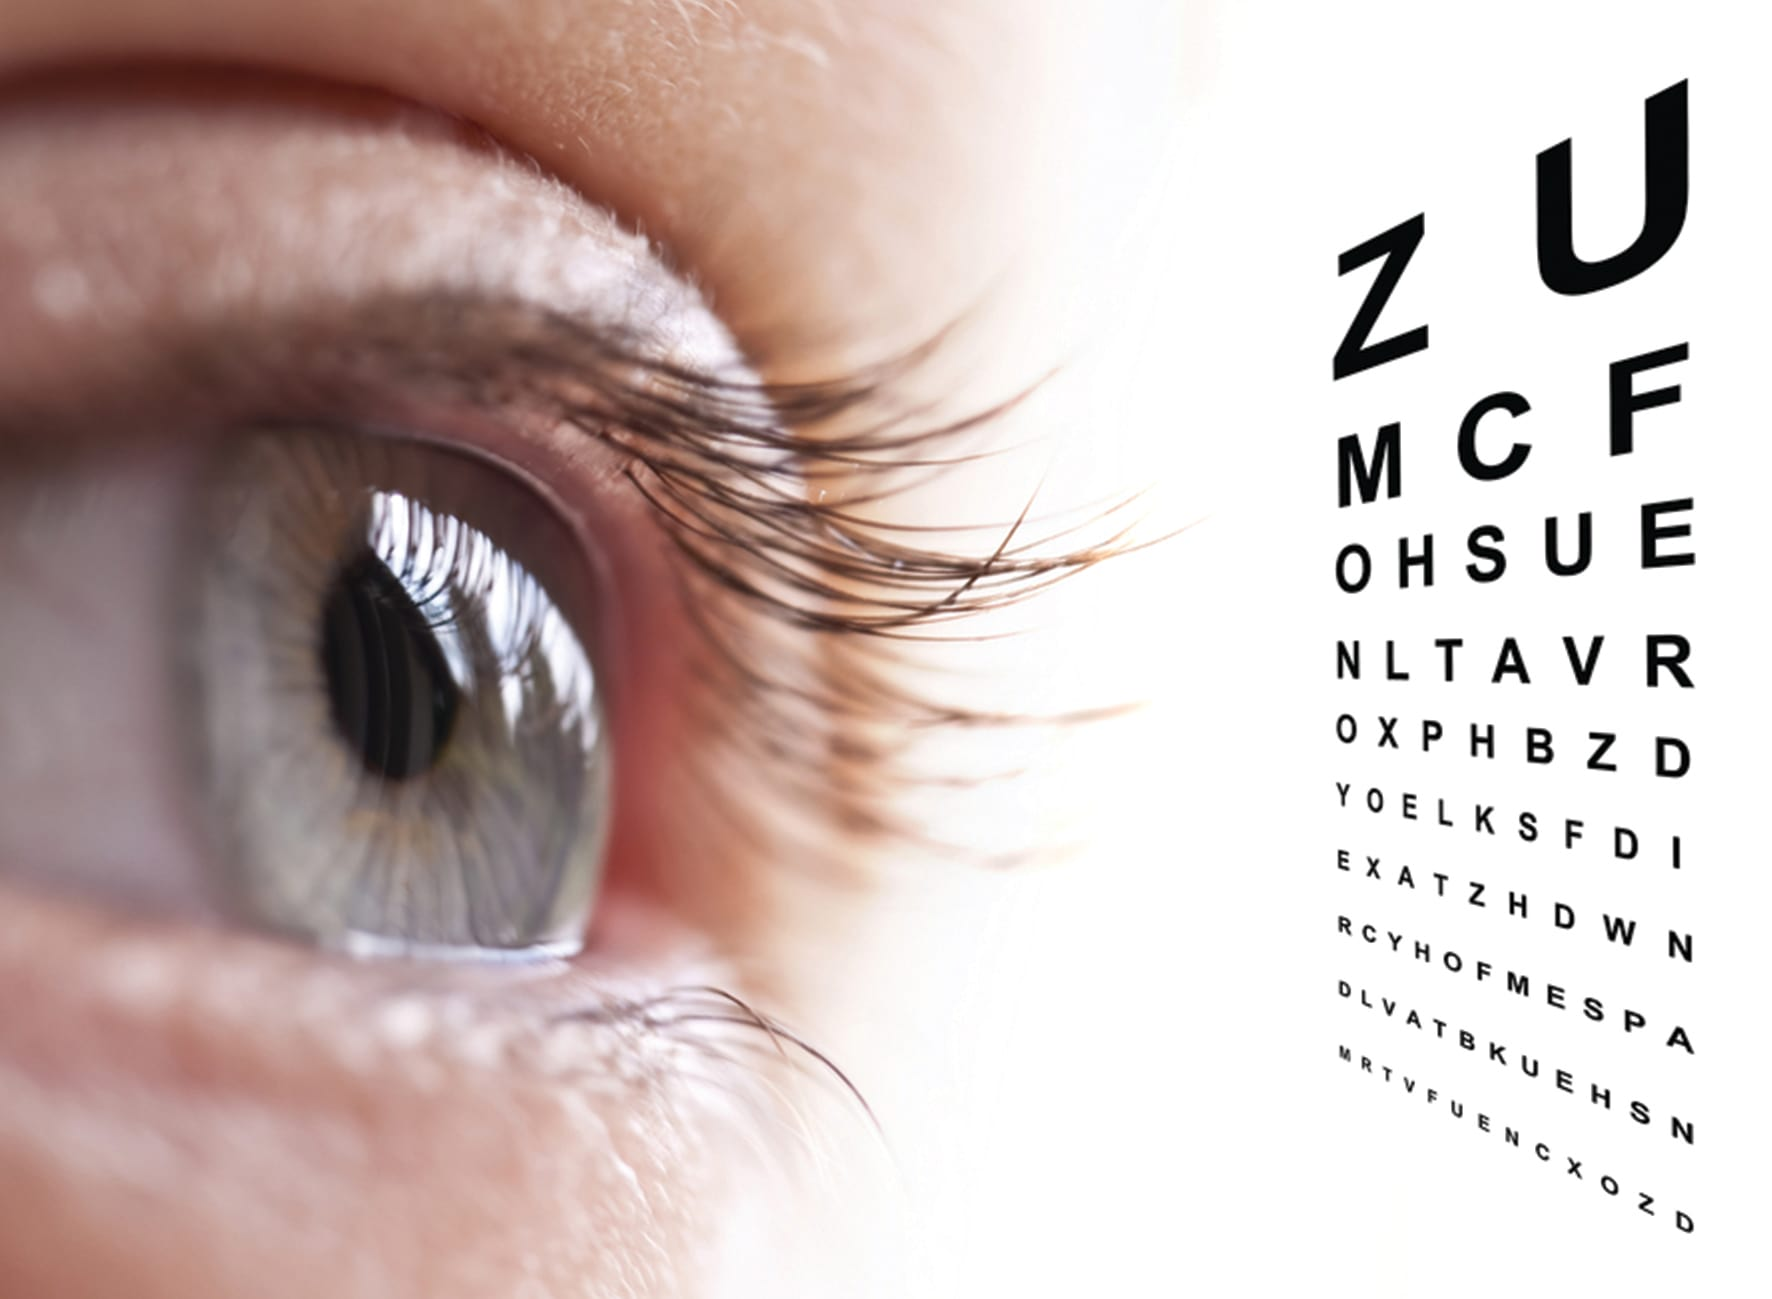 Close up of a person's green eye and long eyelashes looking at the various letters in various sizes of a sight test